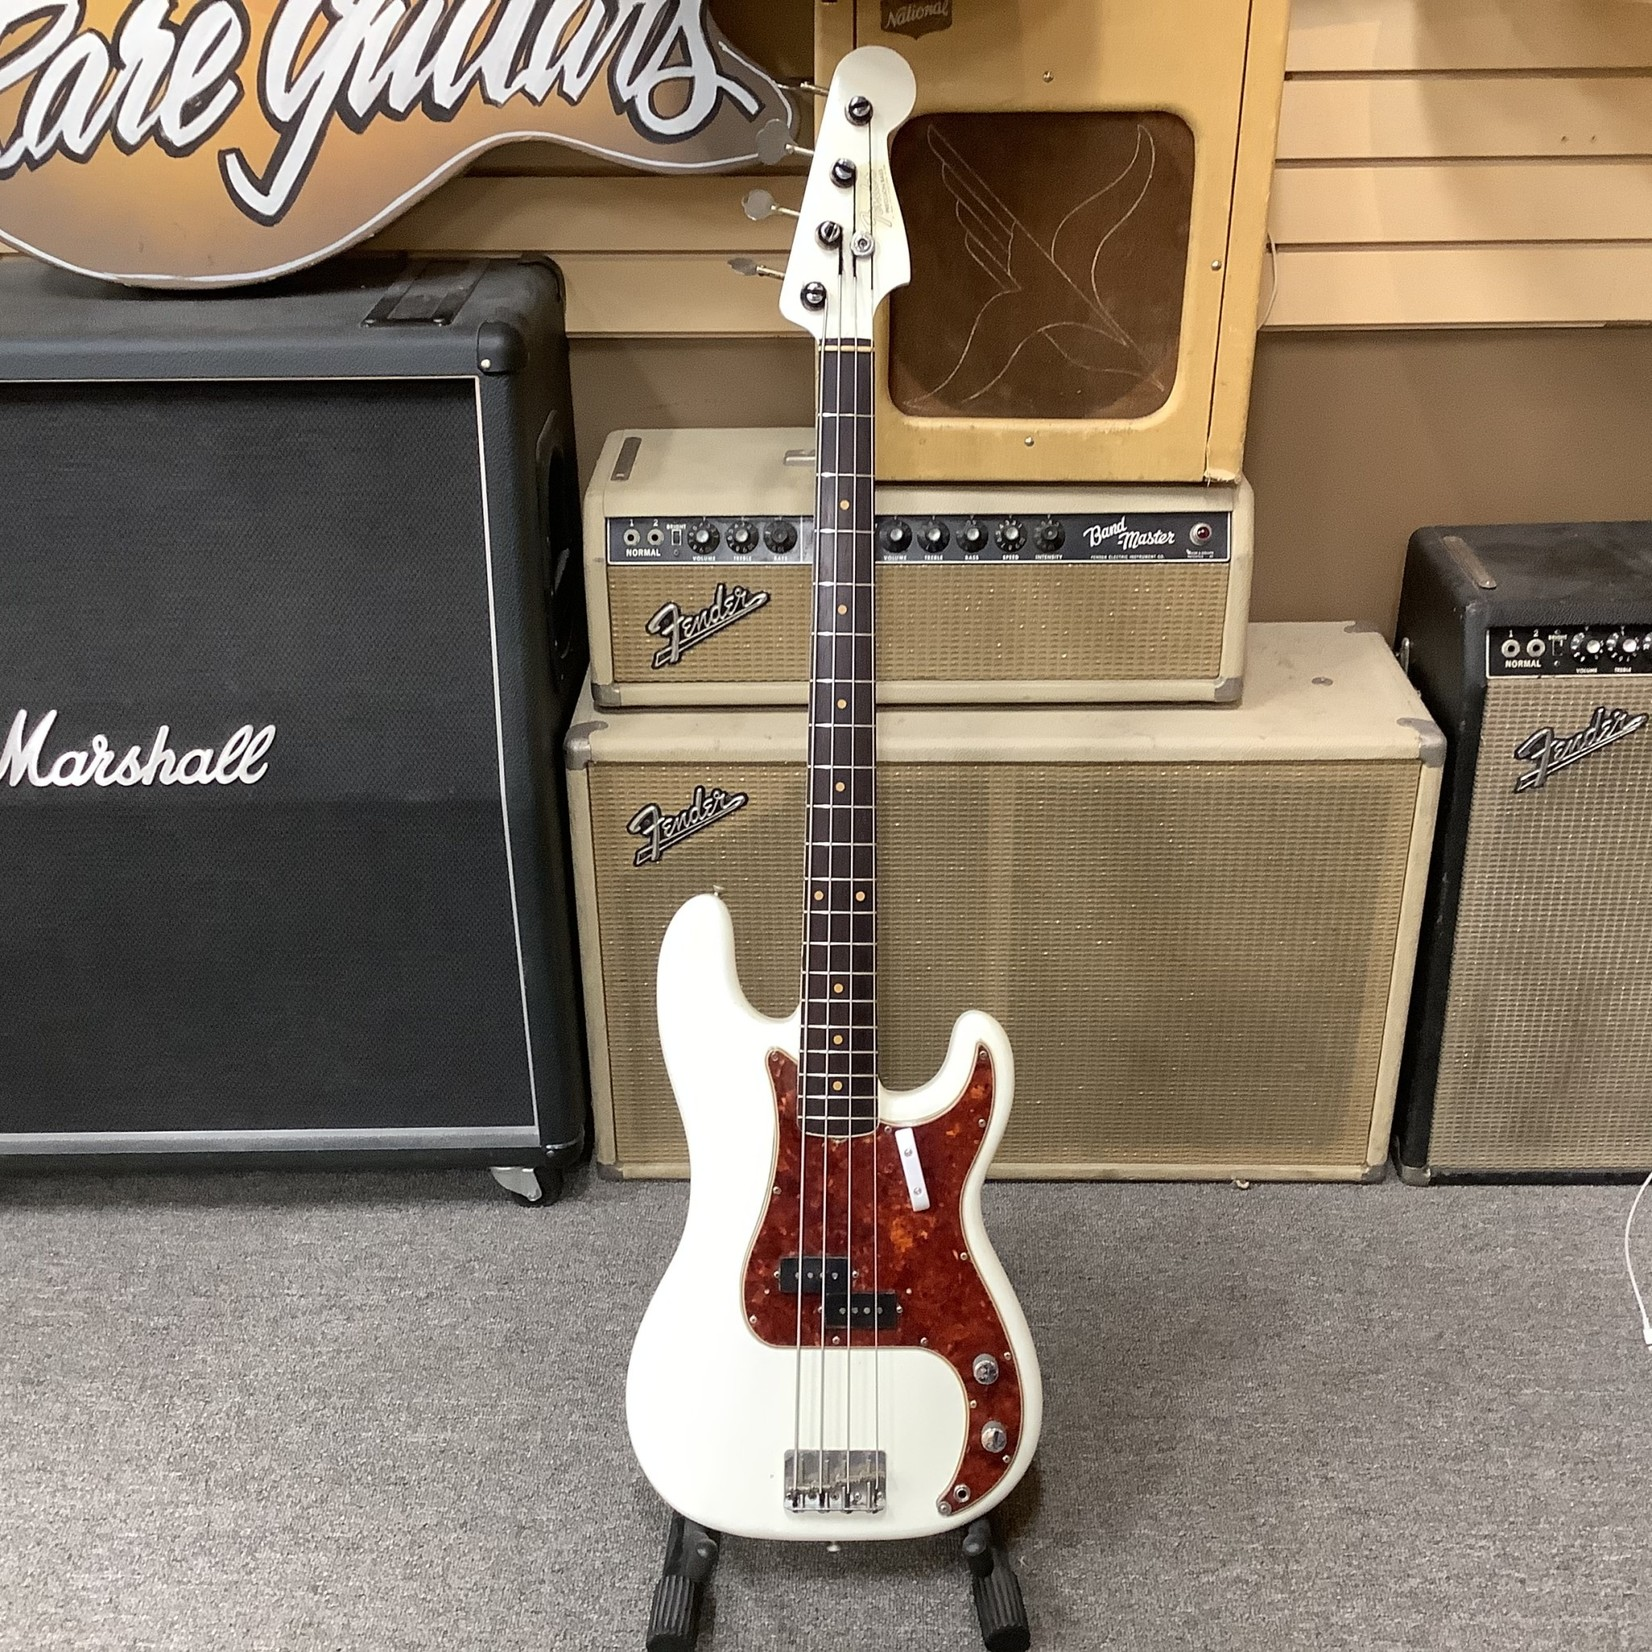 Fender 1961 Fender Precision Bass White Matching Headstock-Refinished Player Grade